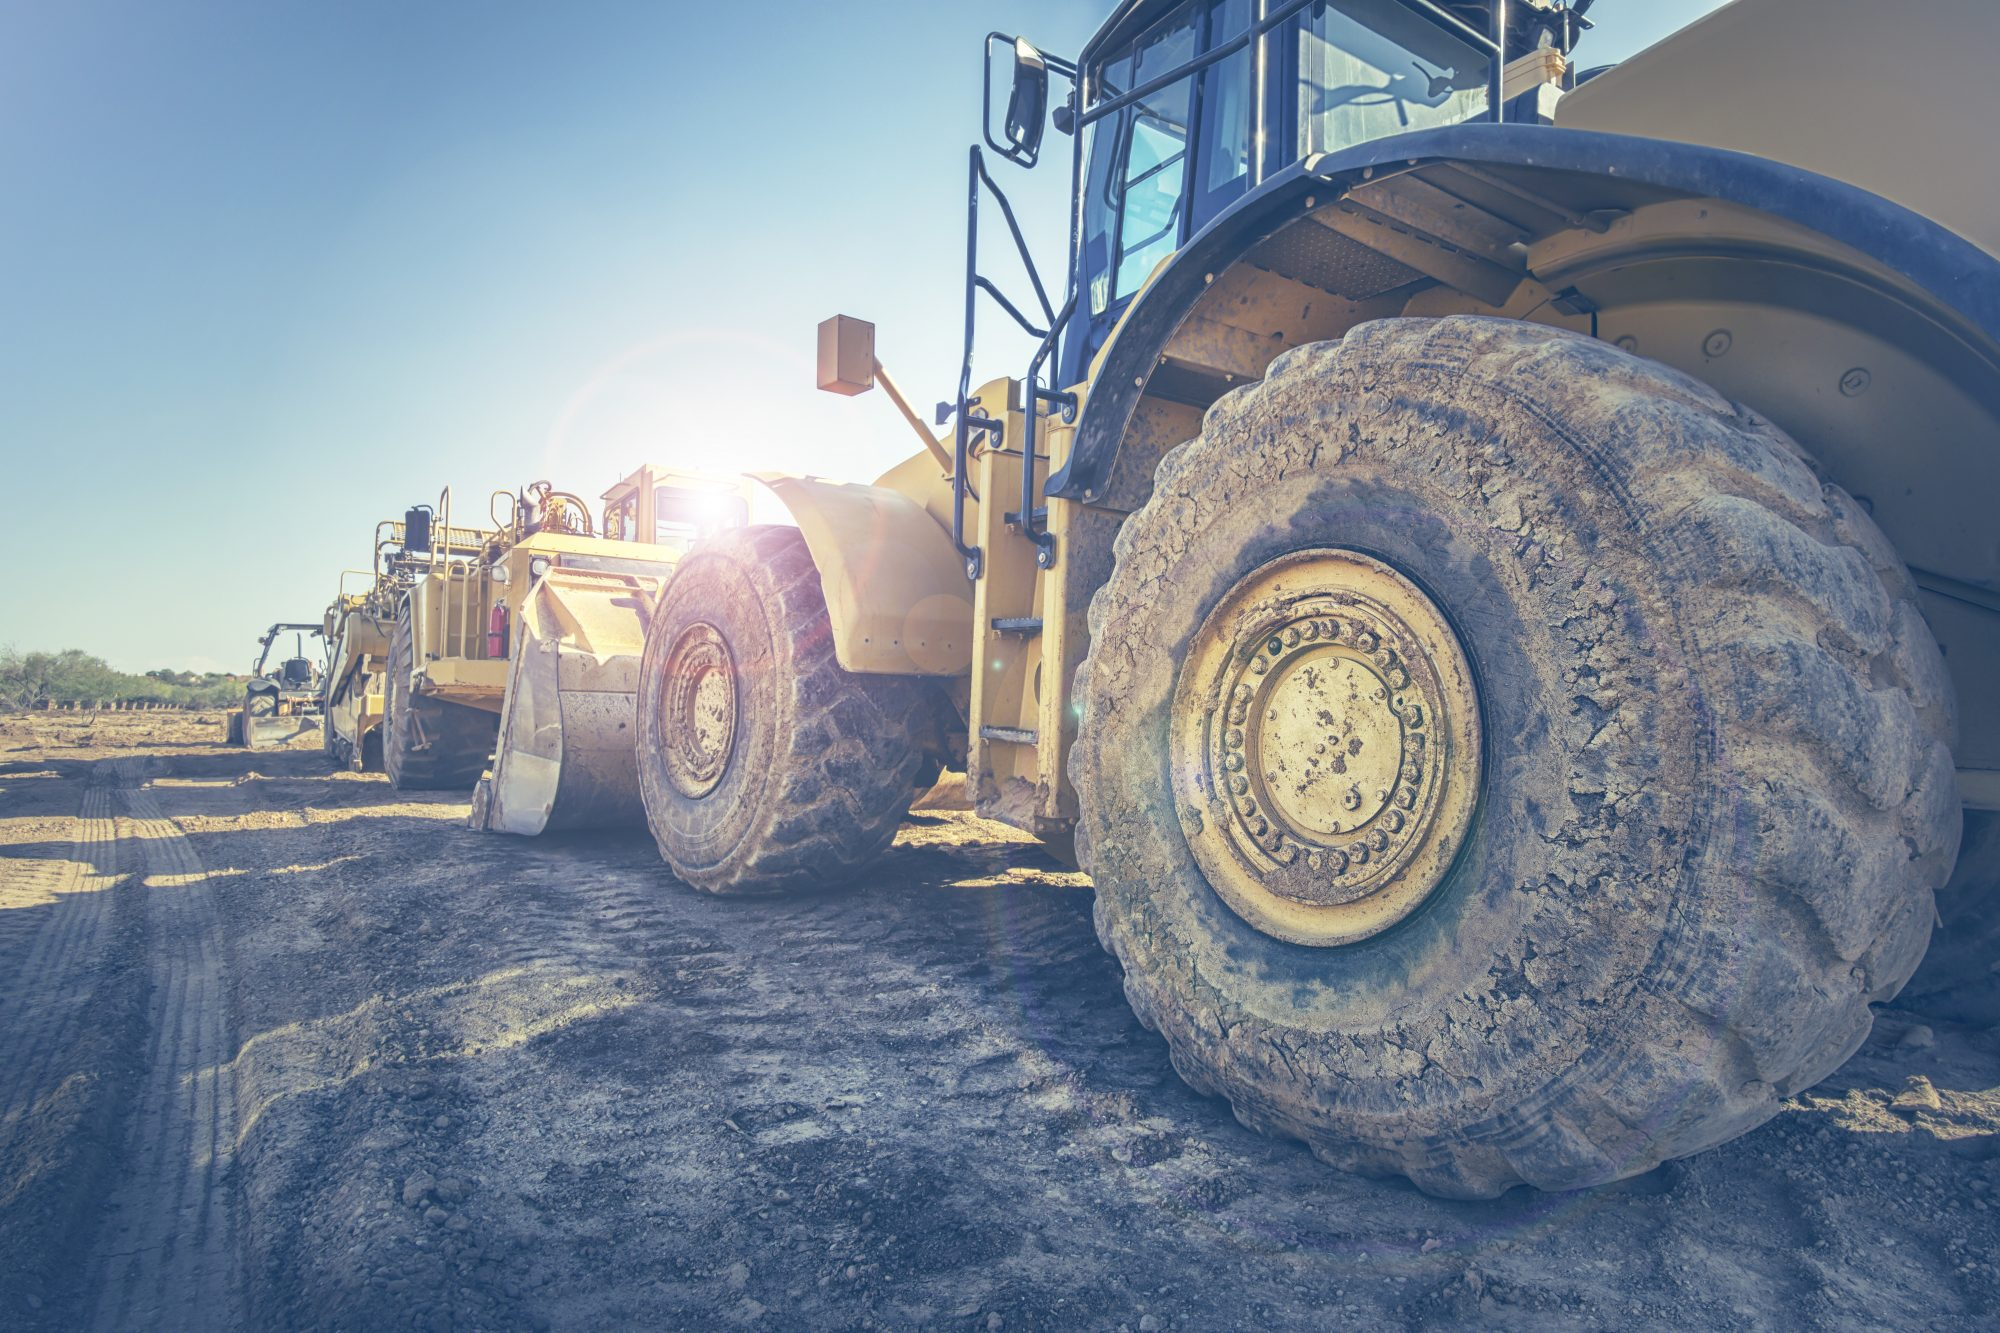 Construction equipment sales plunge by 39% in first six months of 2020